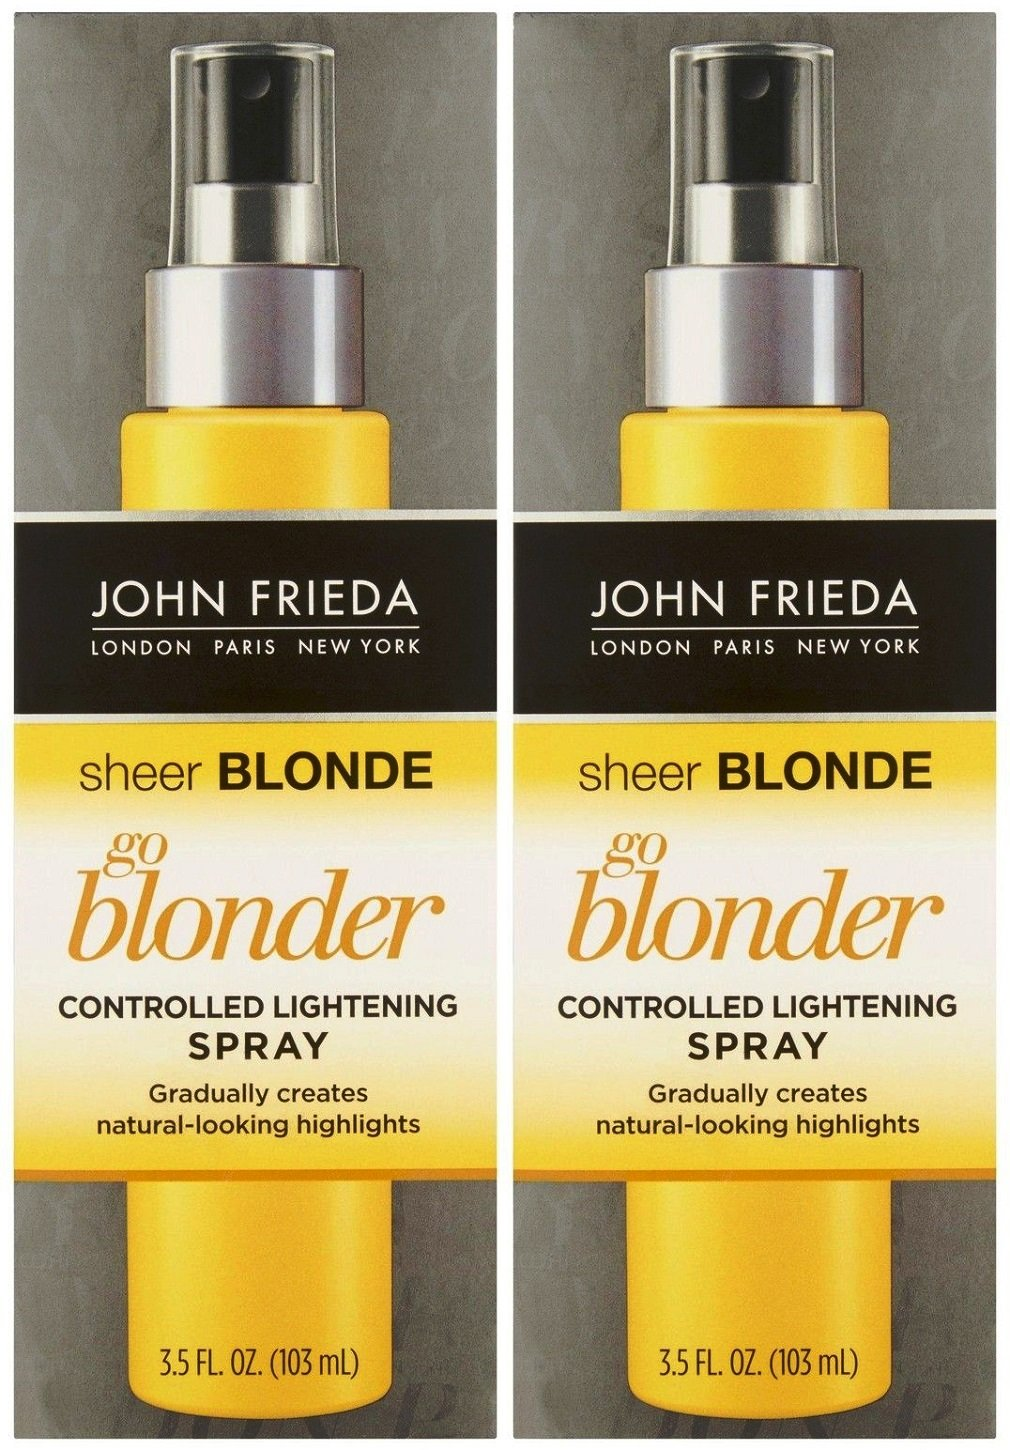 John Frieda Sheer Blonde Go Blonder Controlled Lightening Spray, 3.5 oz, 2 pk